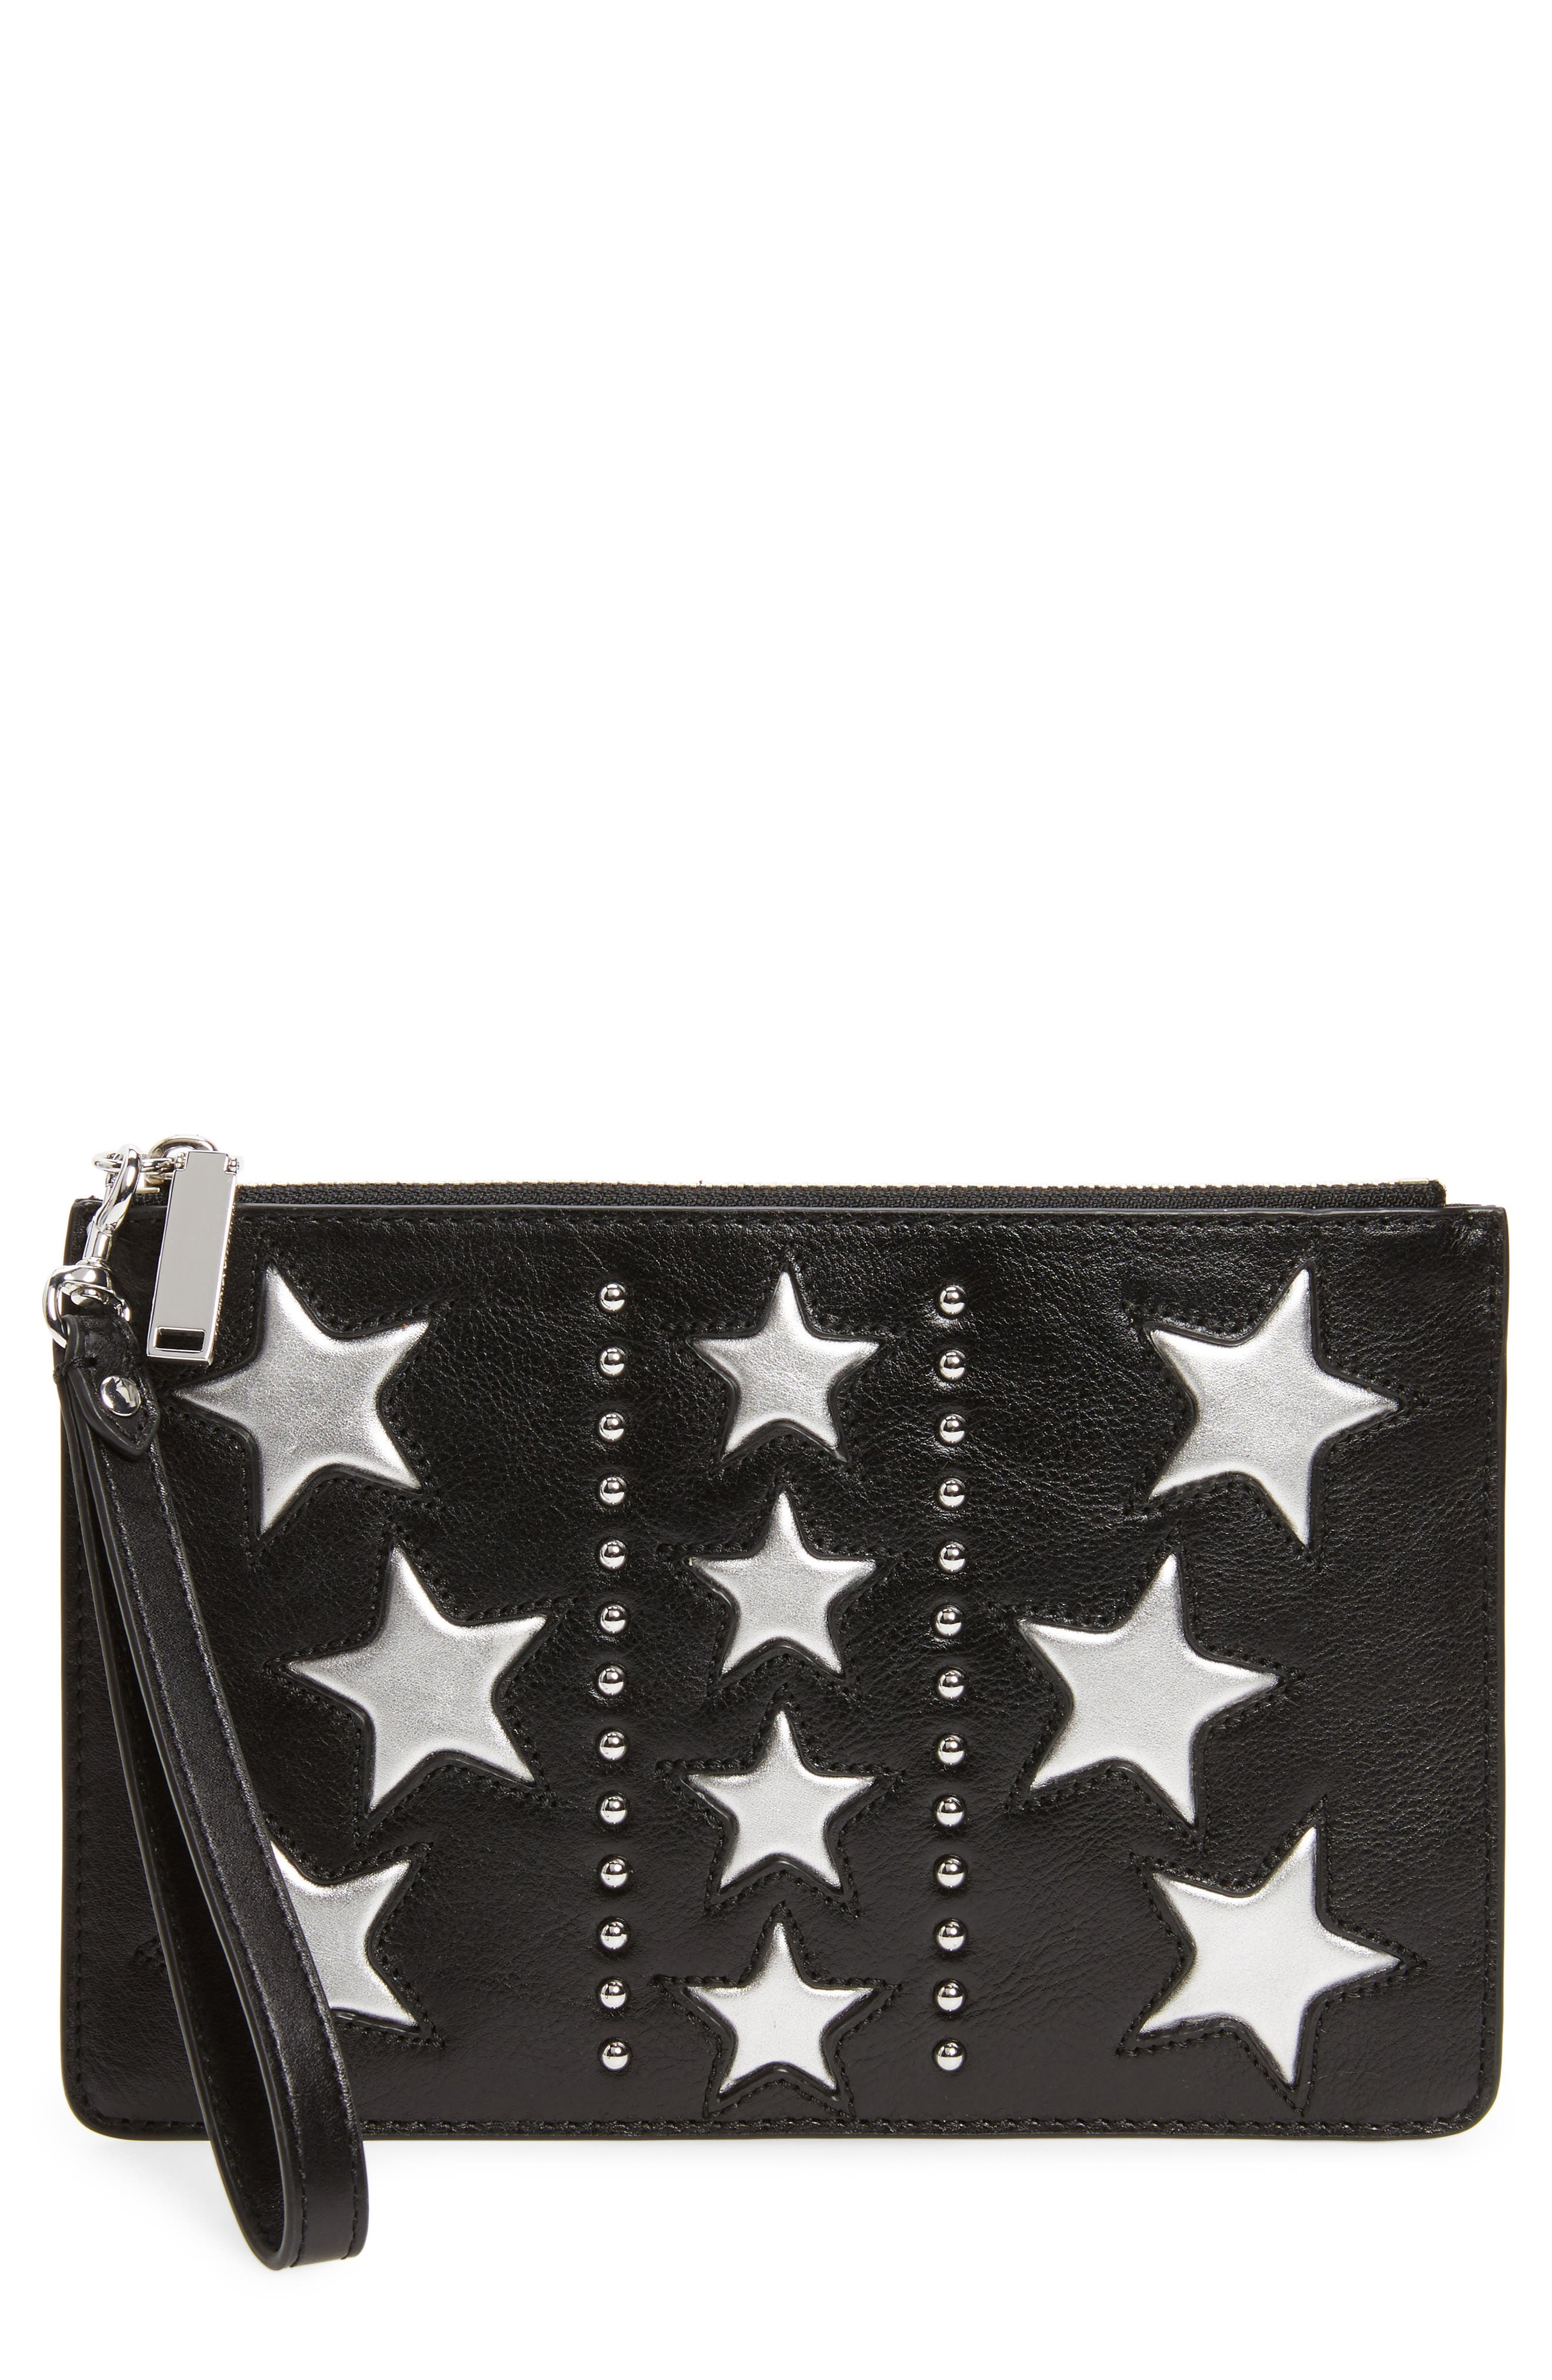 Alternate Image 1 Selected - Rebecca Minkoff Leather Wristlet Pouch